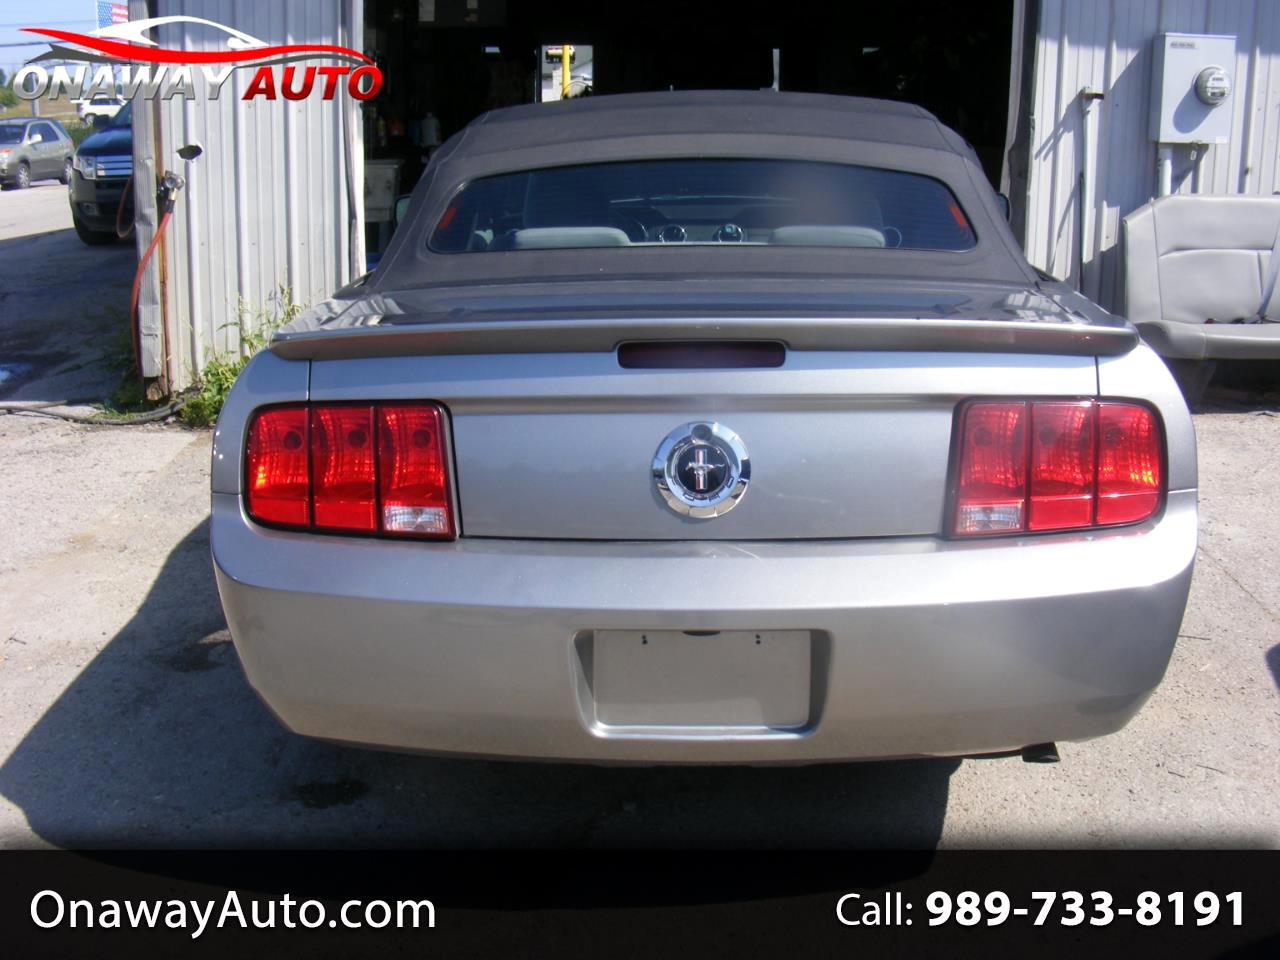 2008 Ford Mustang 2dr Conv Deluxe